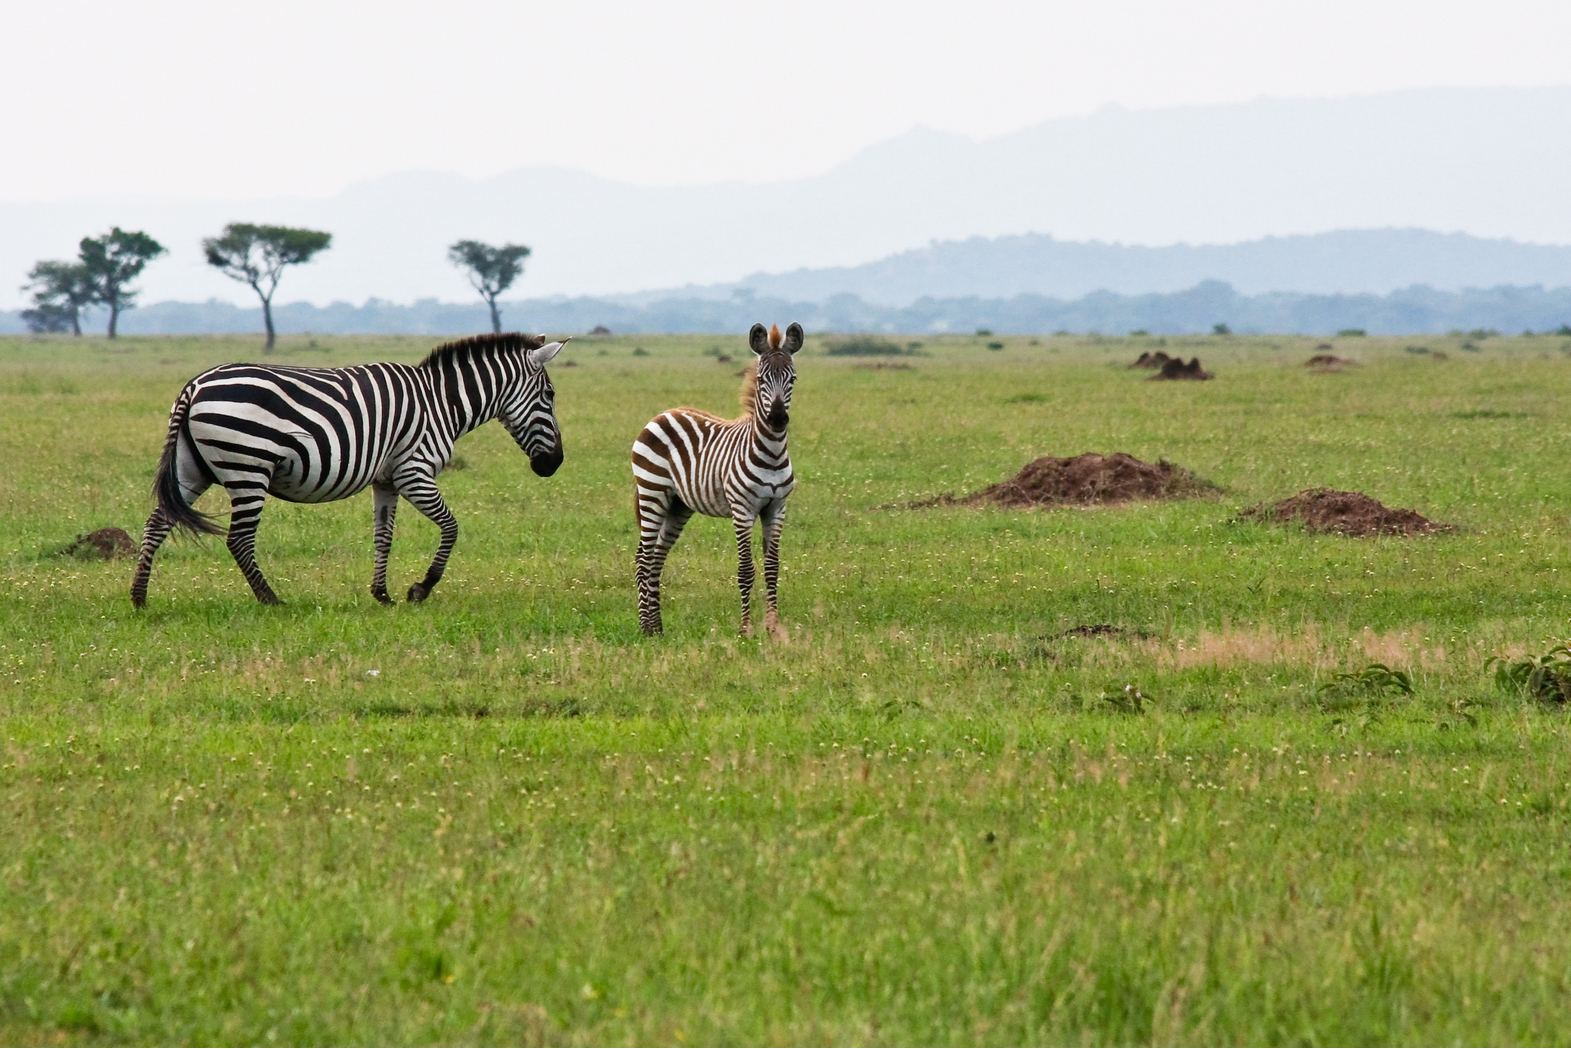 TrailGuard AI: AI-powered cameras deployed to protect against poachers